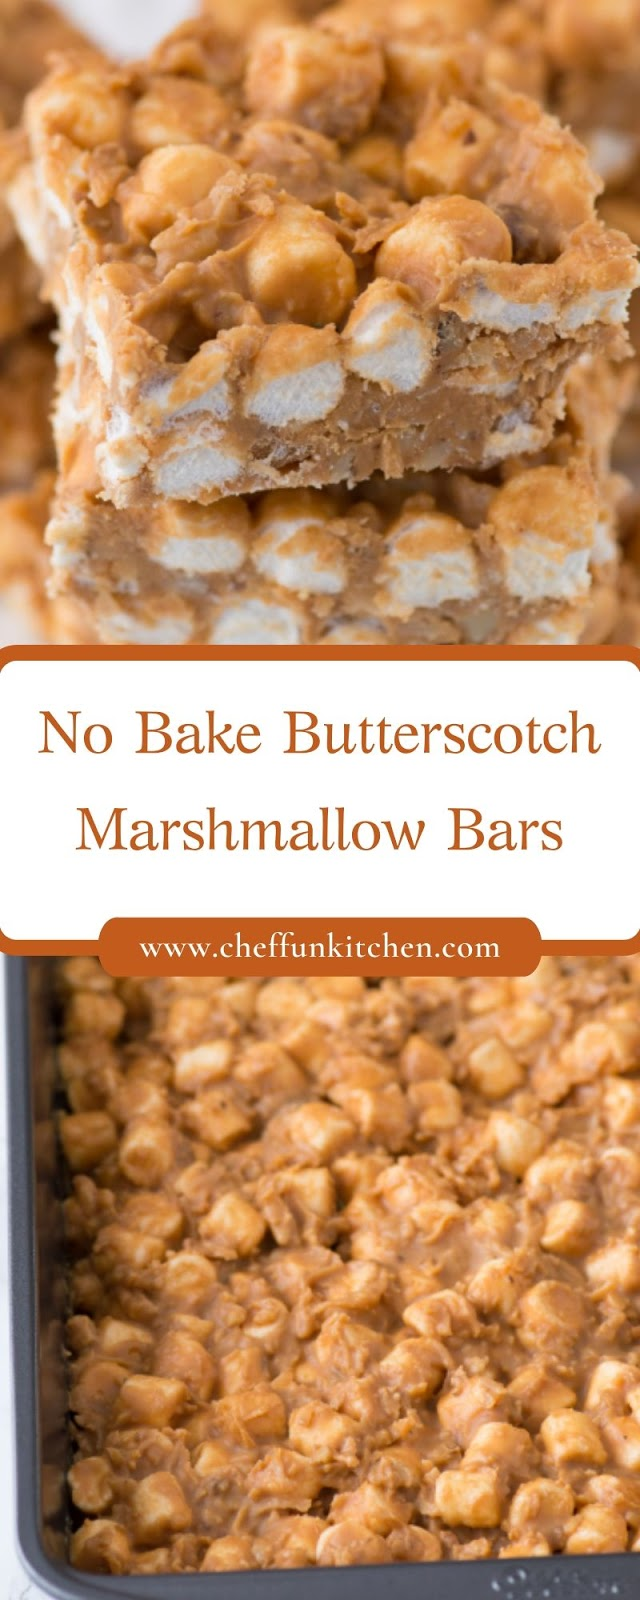 No Bake Butterscotch Marshmallow Bars